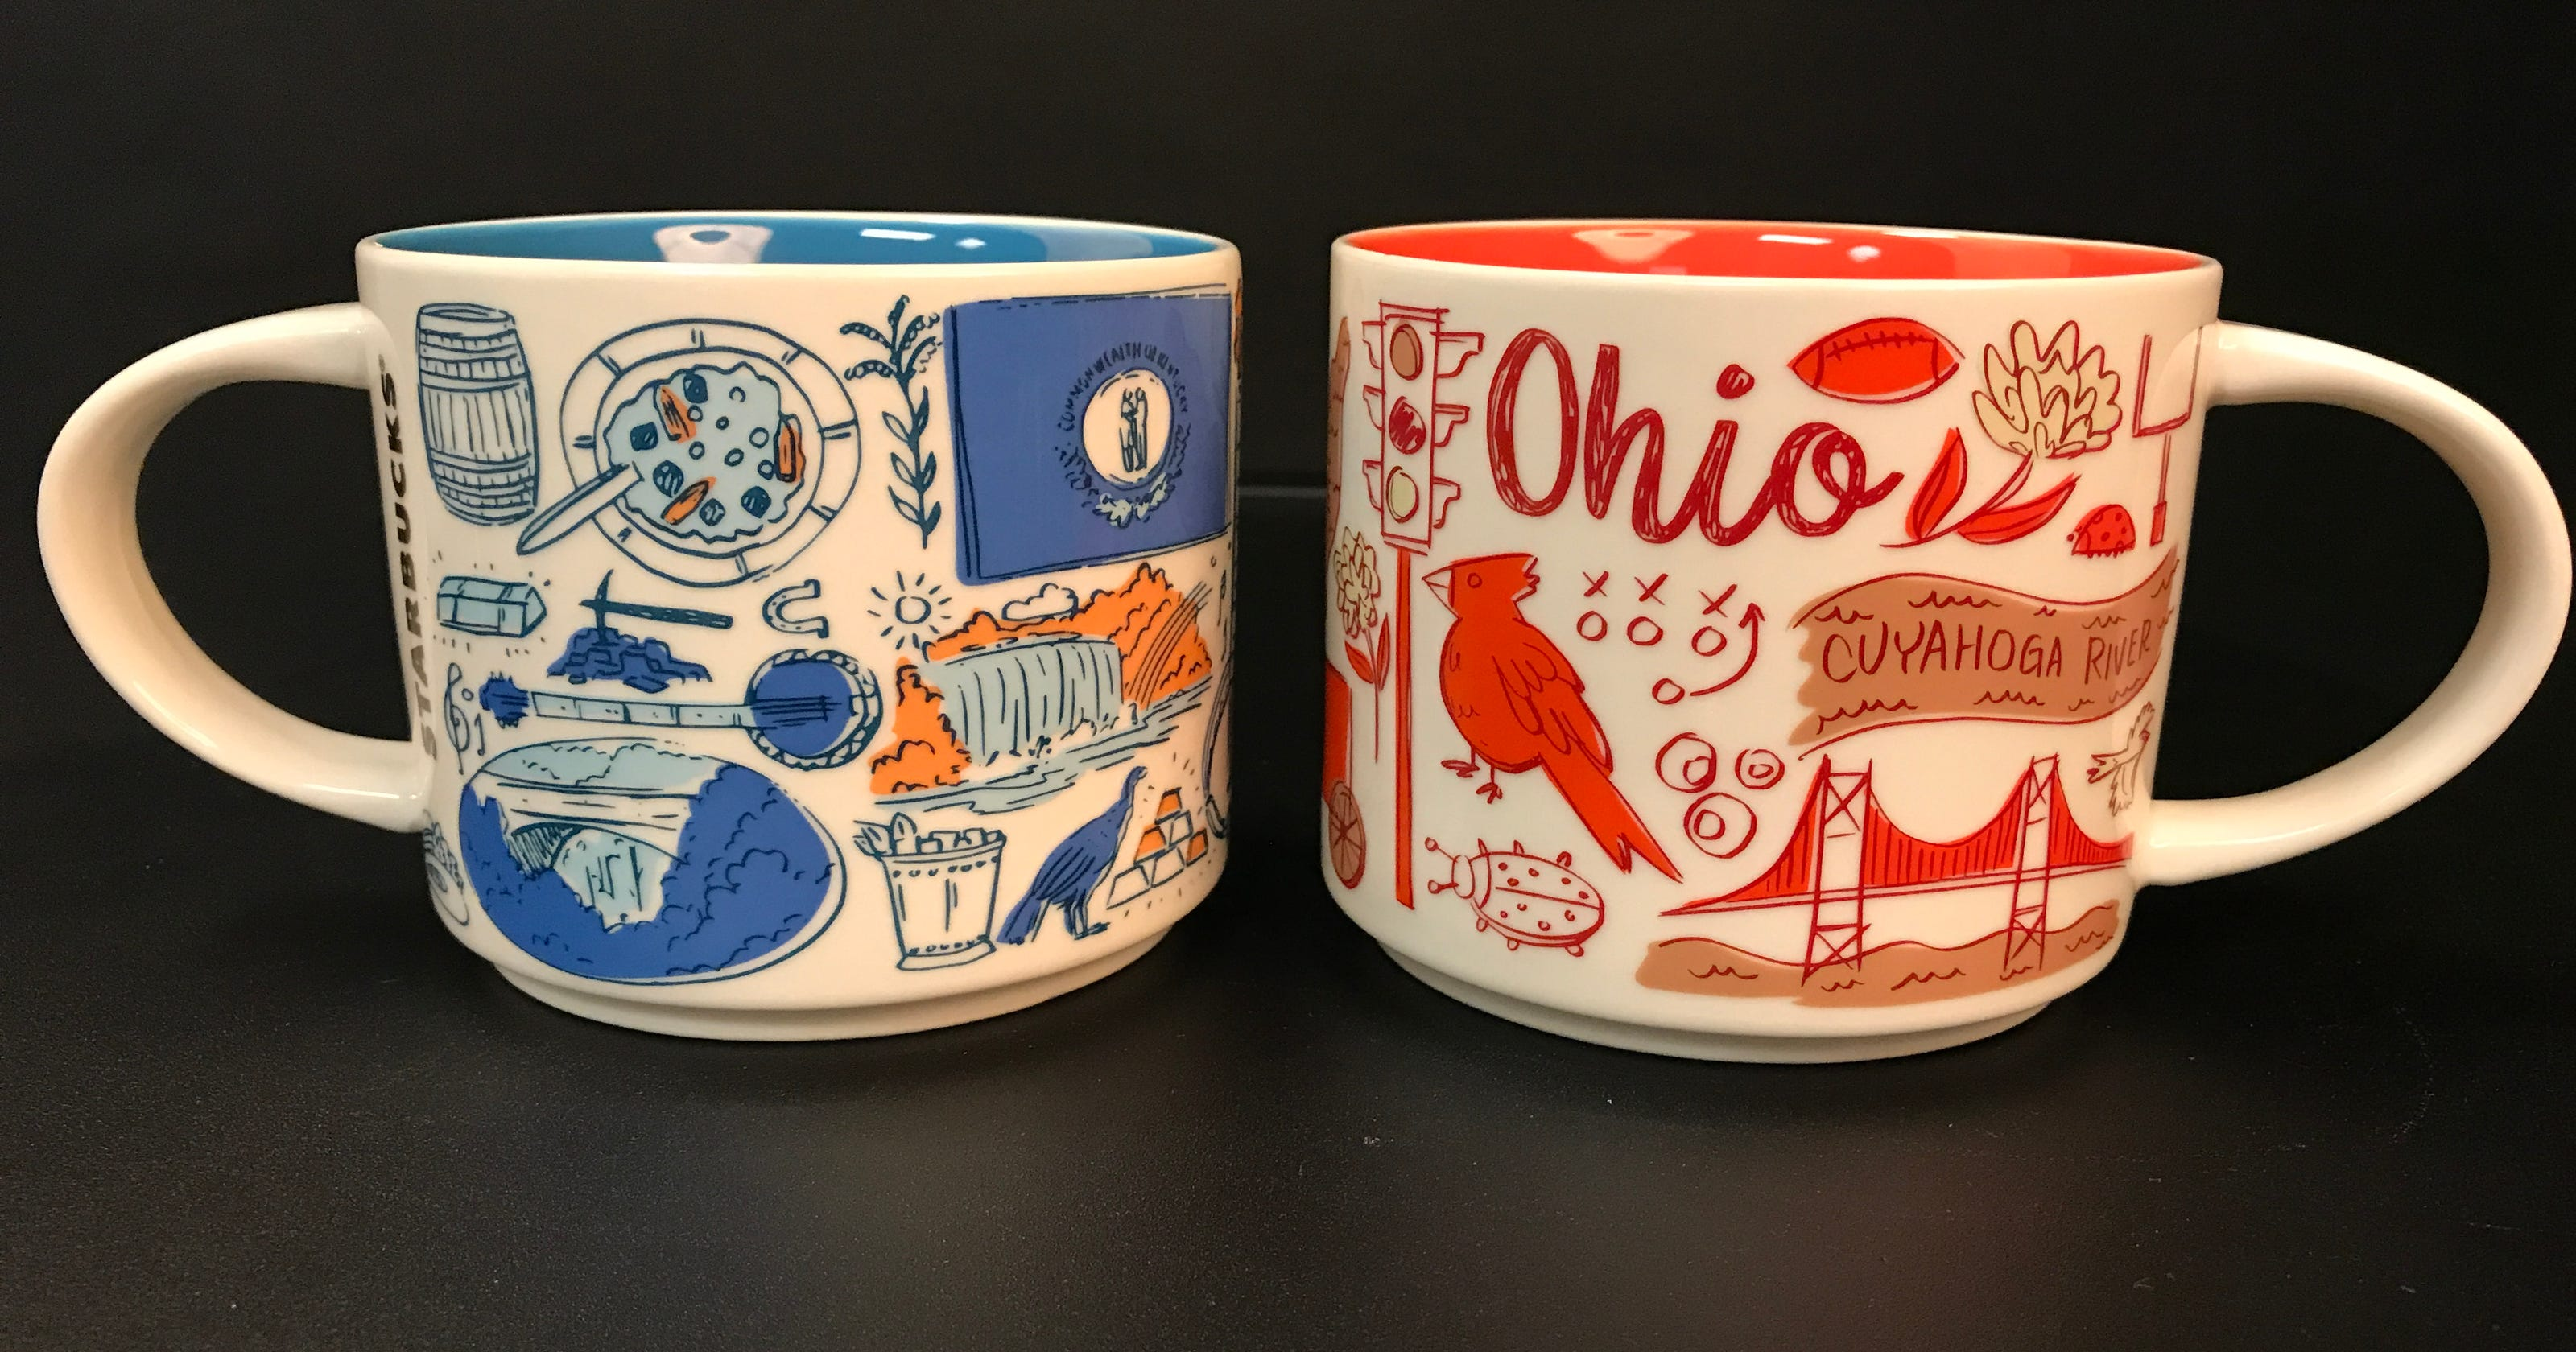 Starbucks Has New Ohio And Ky Mugs Which Is Your Favorite